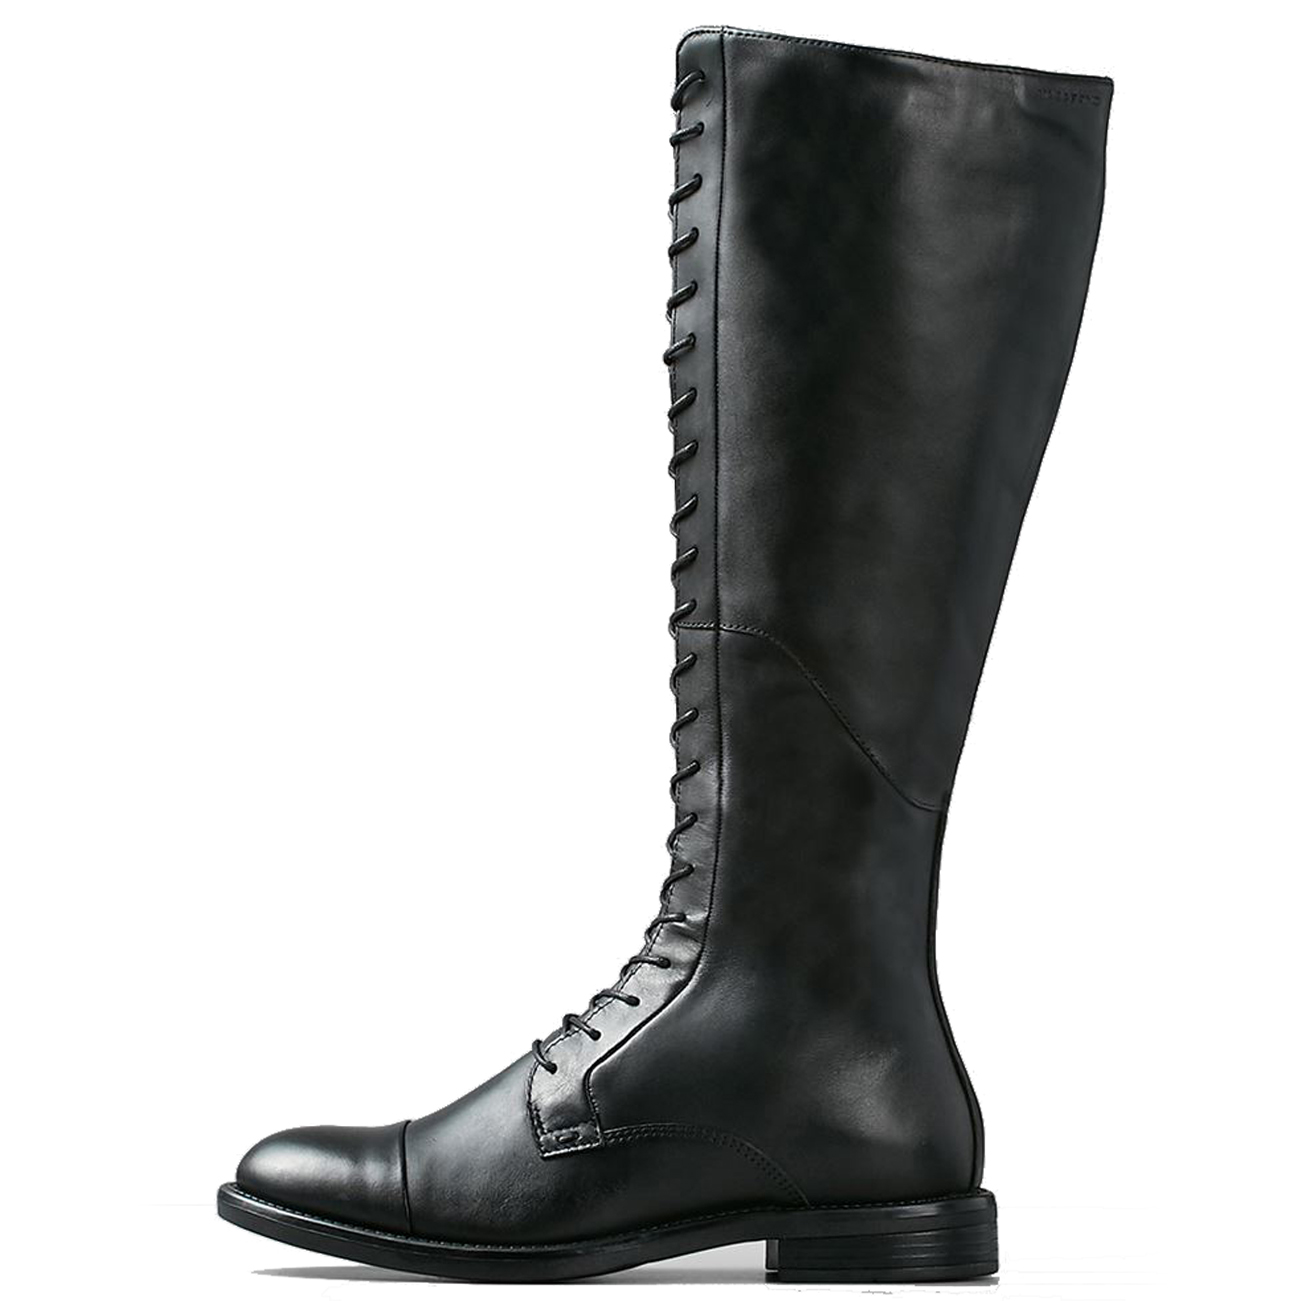 15a7cccafde Womens Vagabond Amina Flat Winter Knee High Smart Leather Black Boots UK  3.5-8